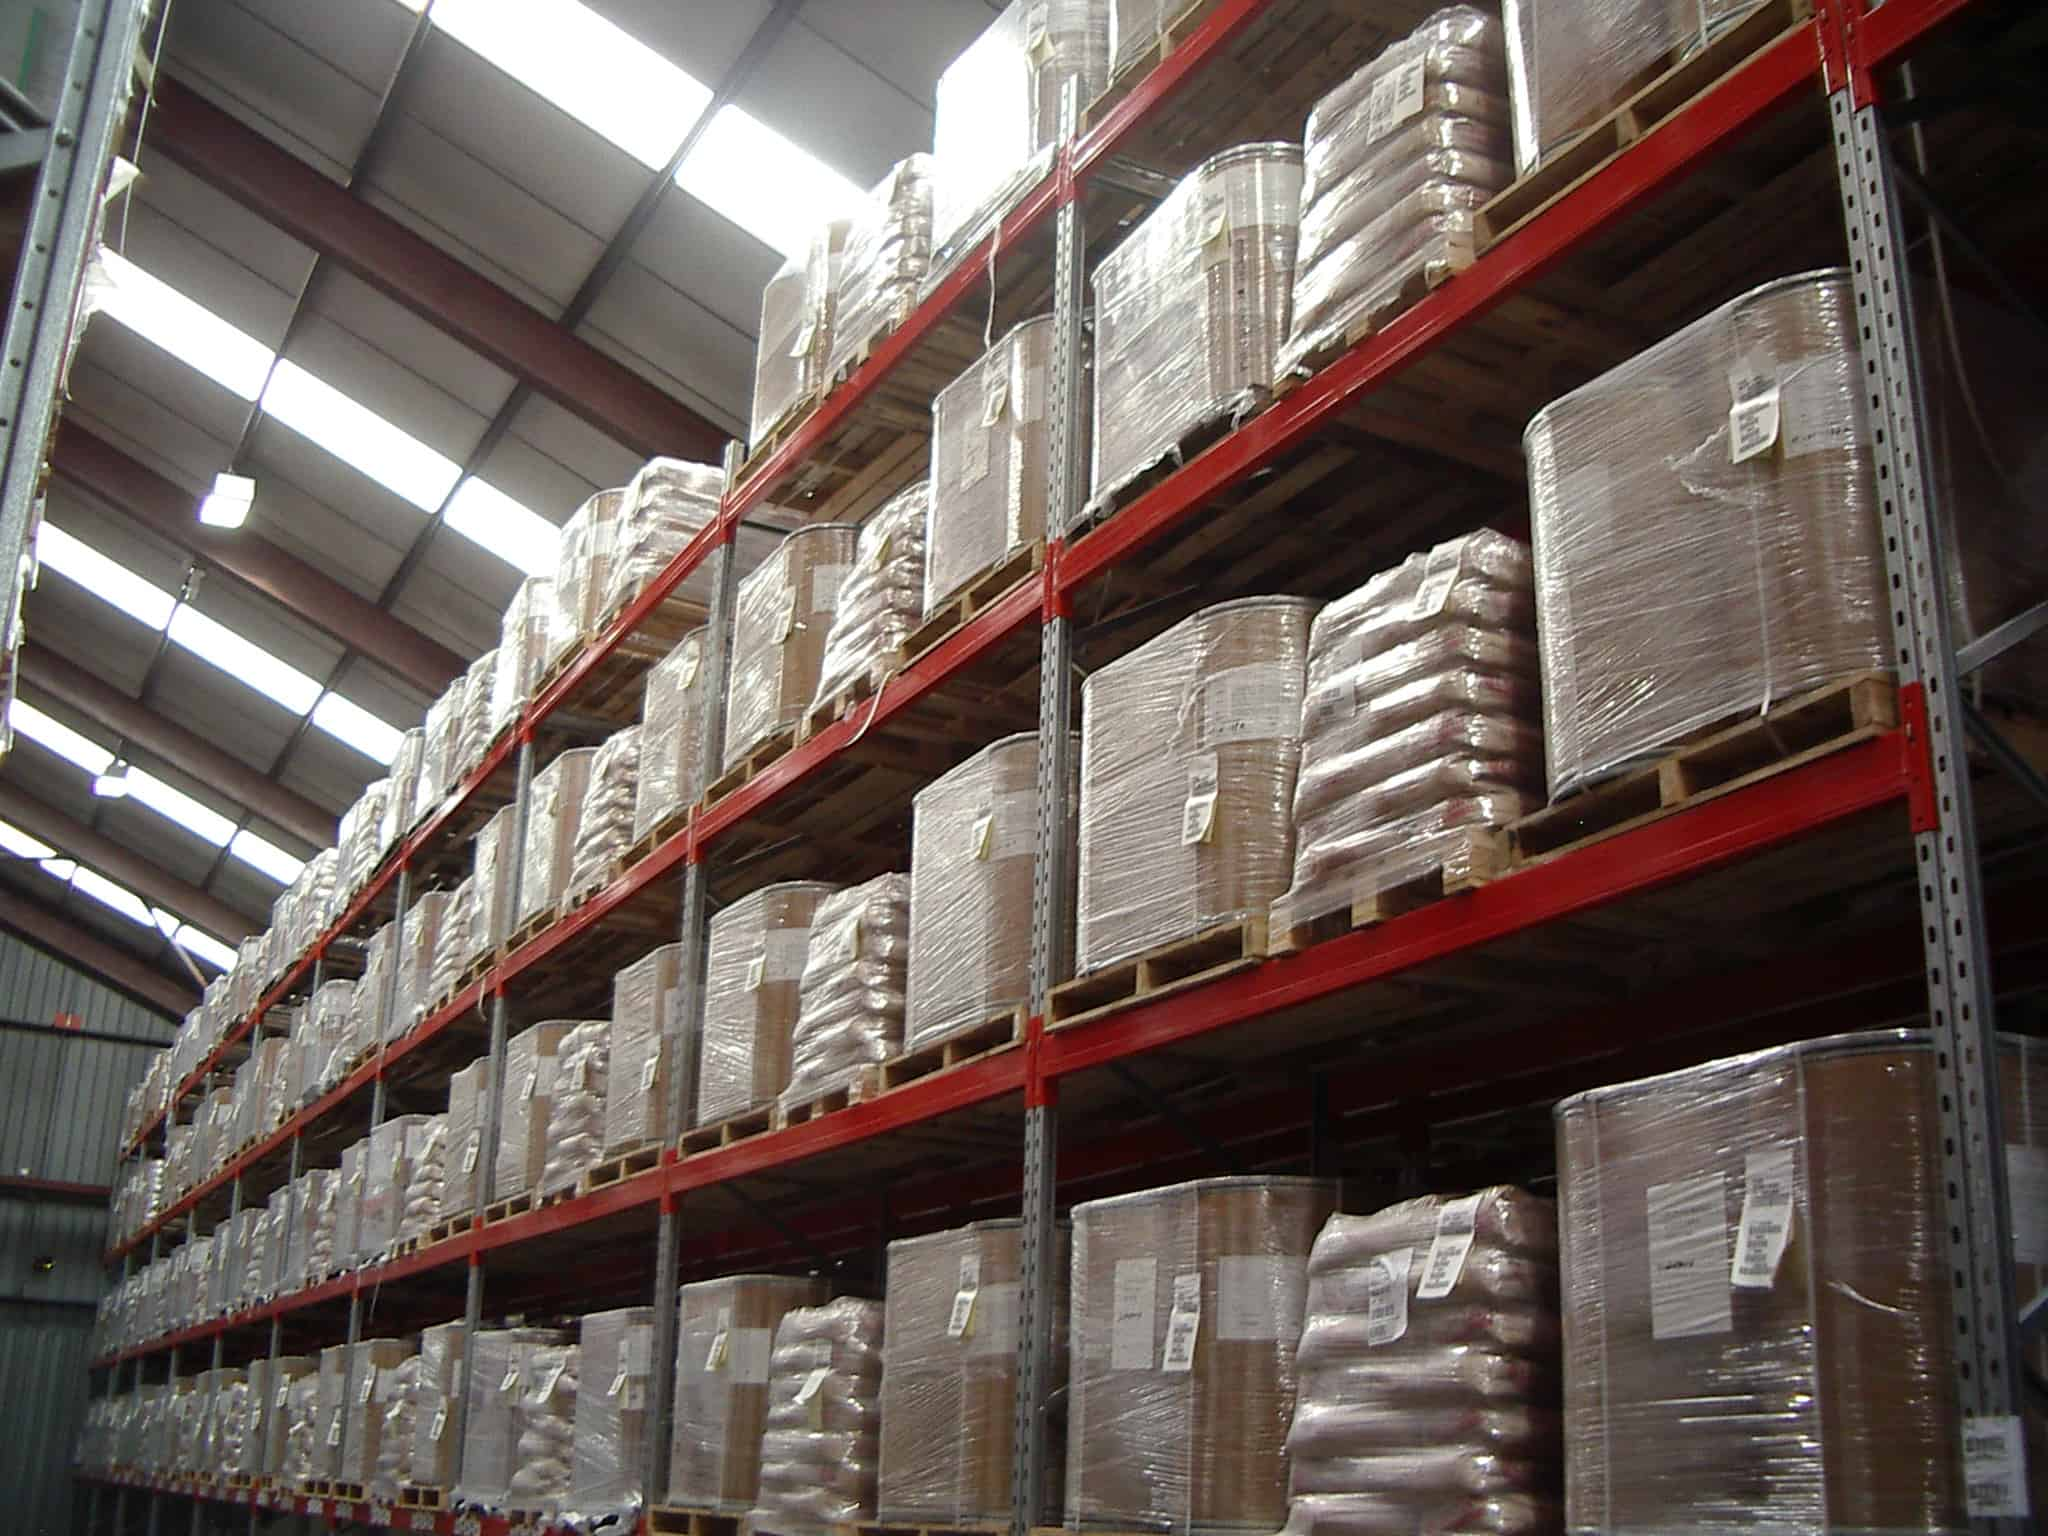 Pallet Racking for Distribution